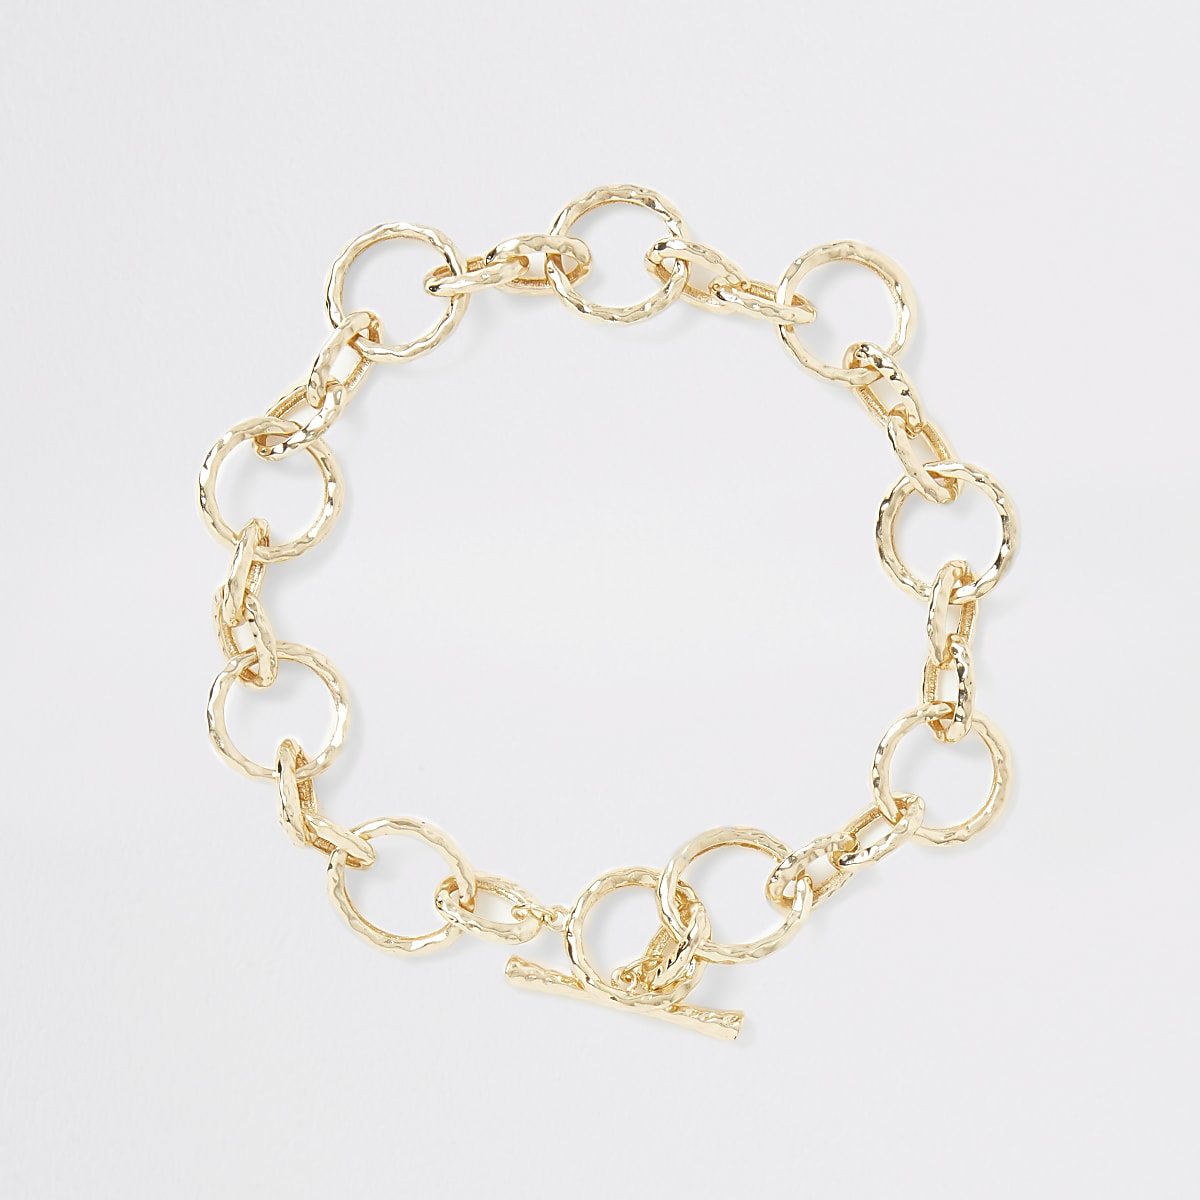 Gold color battered chain necklace